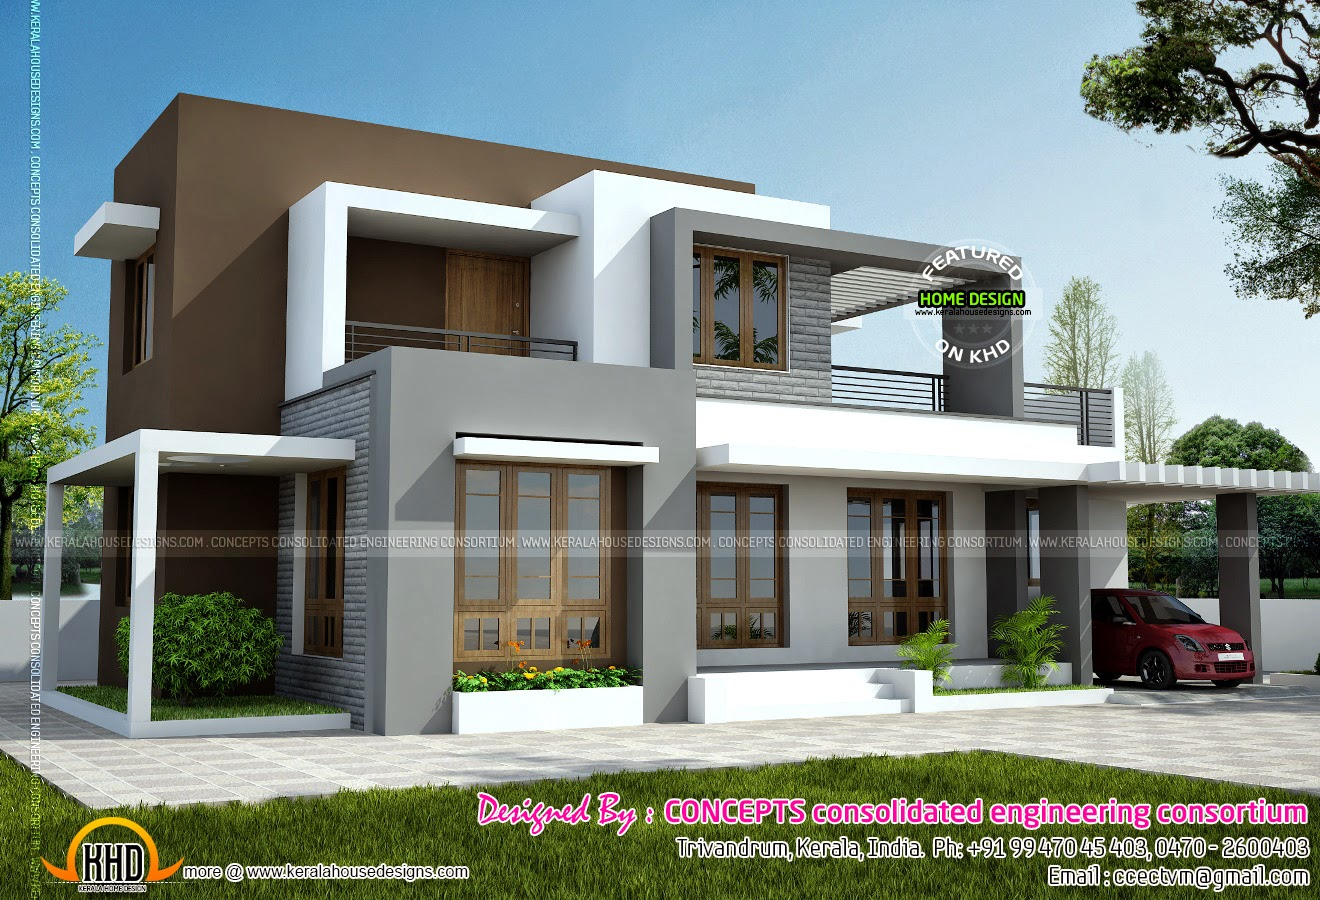 1722 square feet modern flat roof house kerala home design and floor plans - Houses atticsquare meters ...